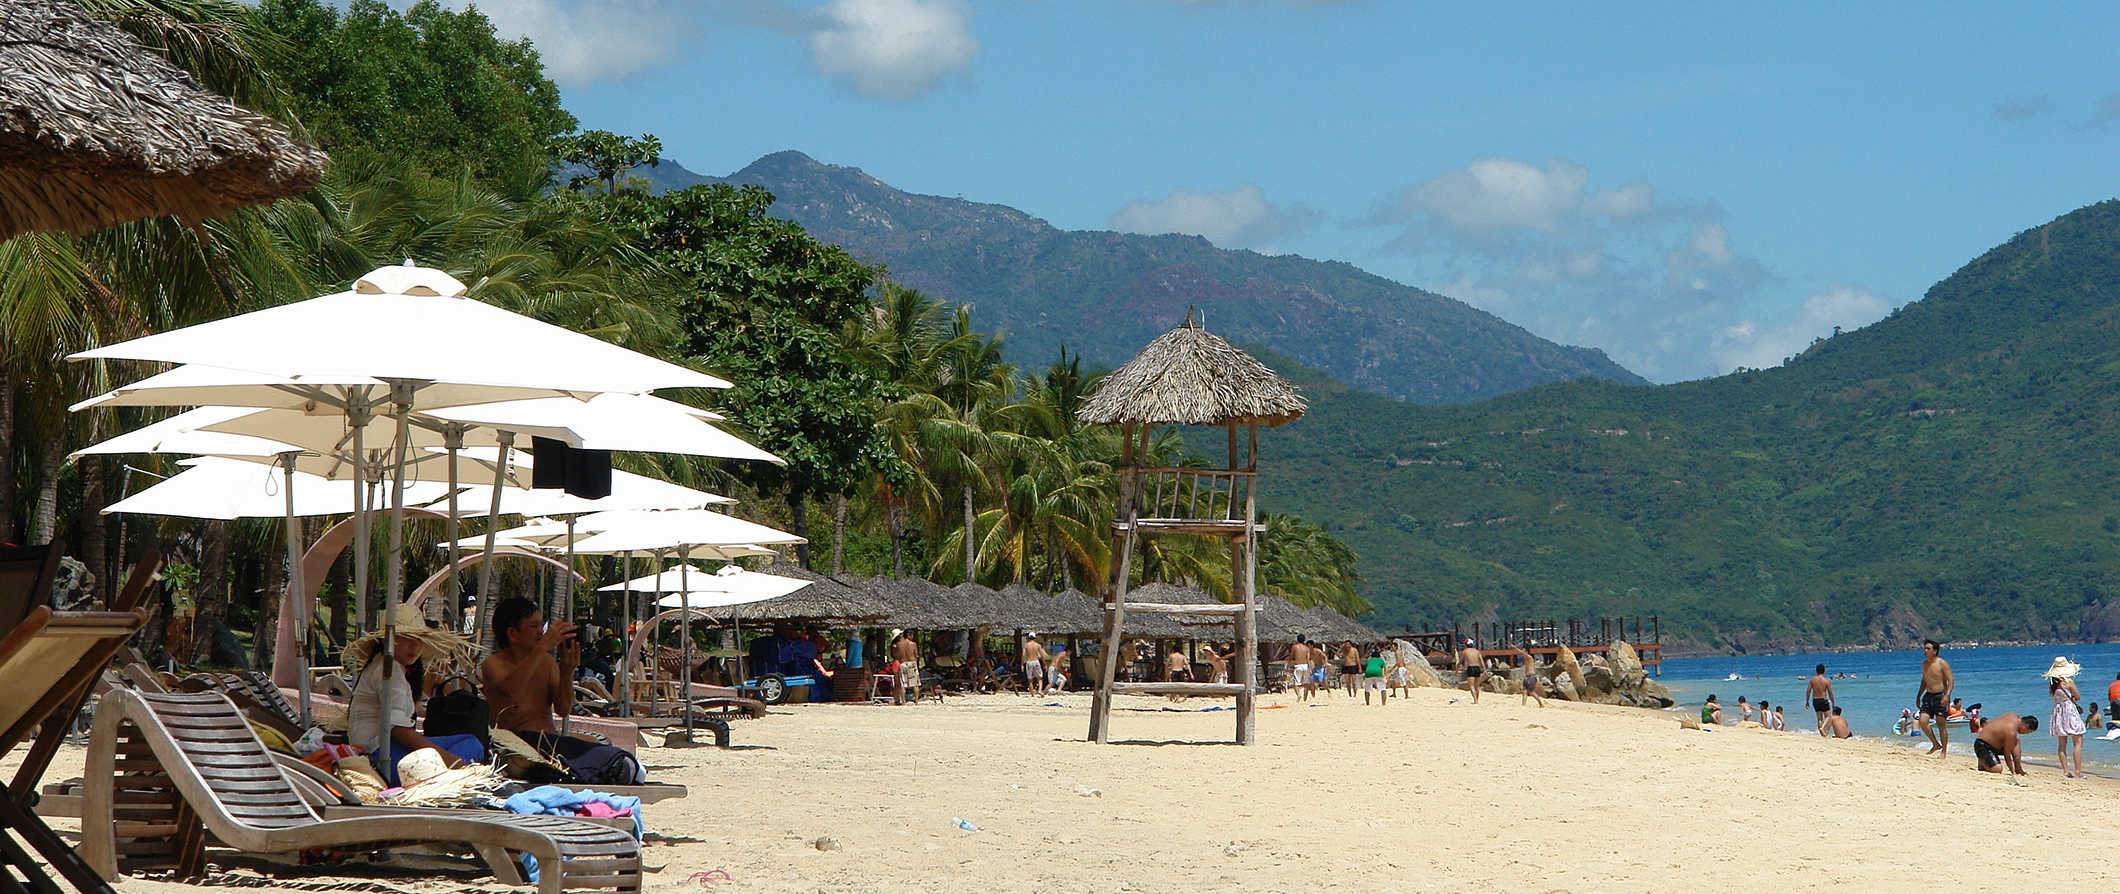 beach scene in Ha Trang